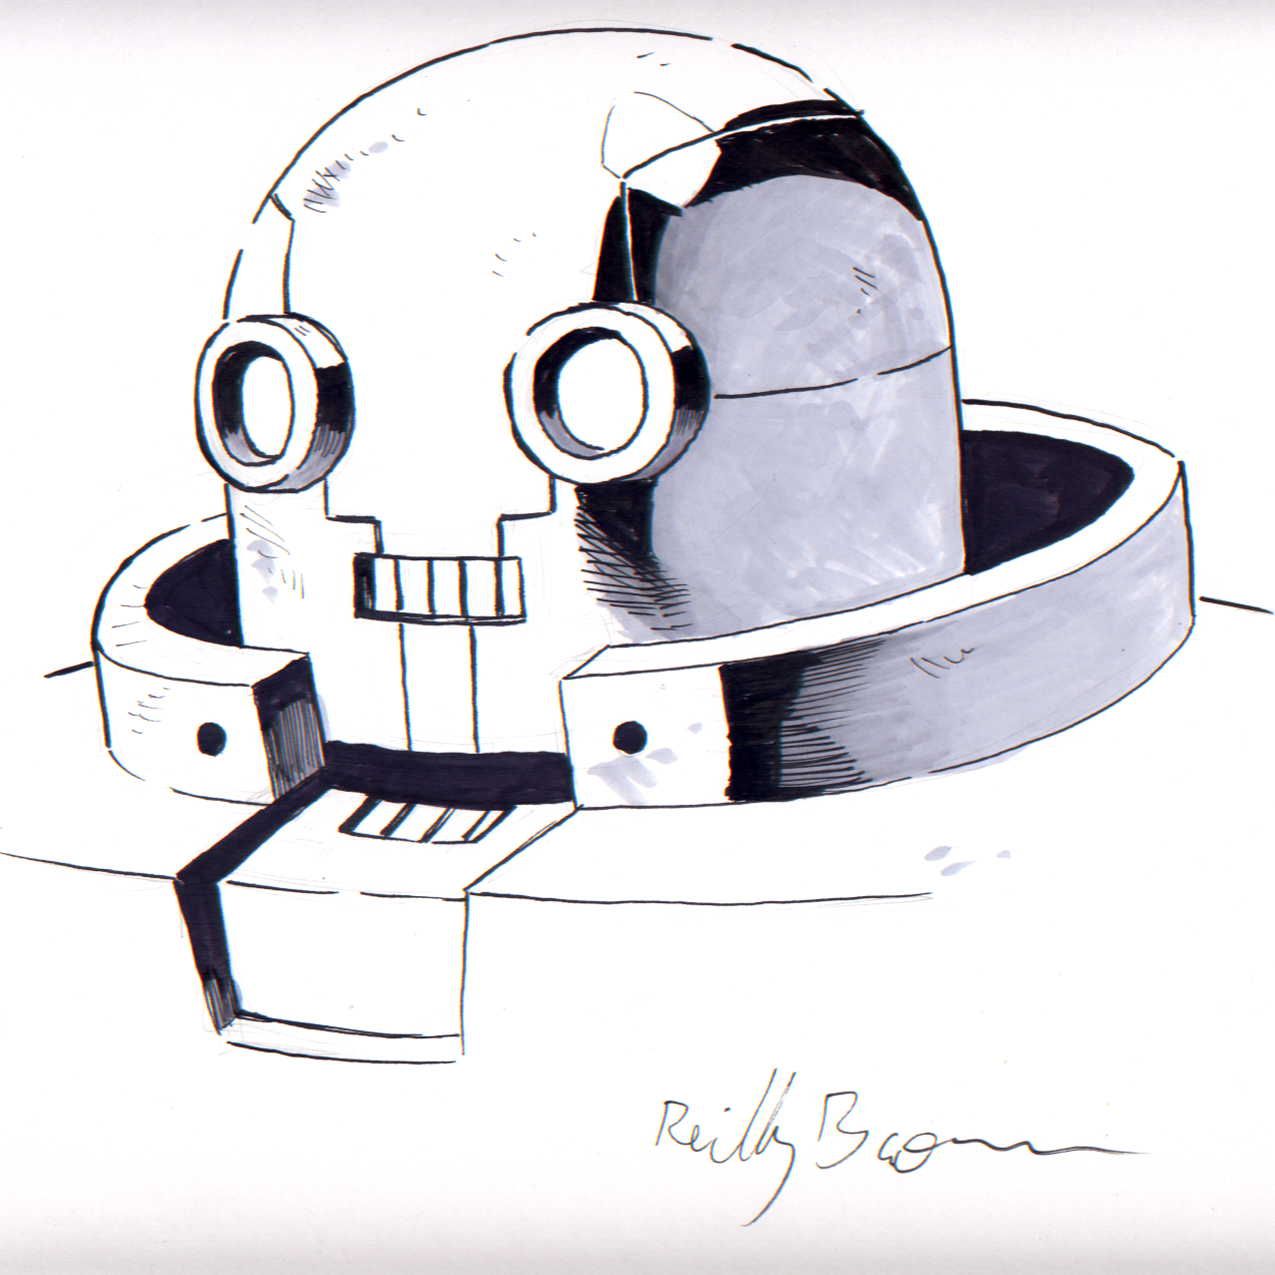 thedudevondoom :      Glam Rock Gorilla world-building week, Day 4: Amadeus!   Figured this was a good time to scan this great mugshot of Big Bot that  Reilly Brown (of  Power Play  and Marvel fame) did during SDCC. Thanks again, Reilly!     You're welcome, man!